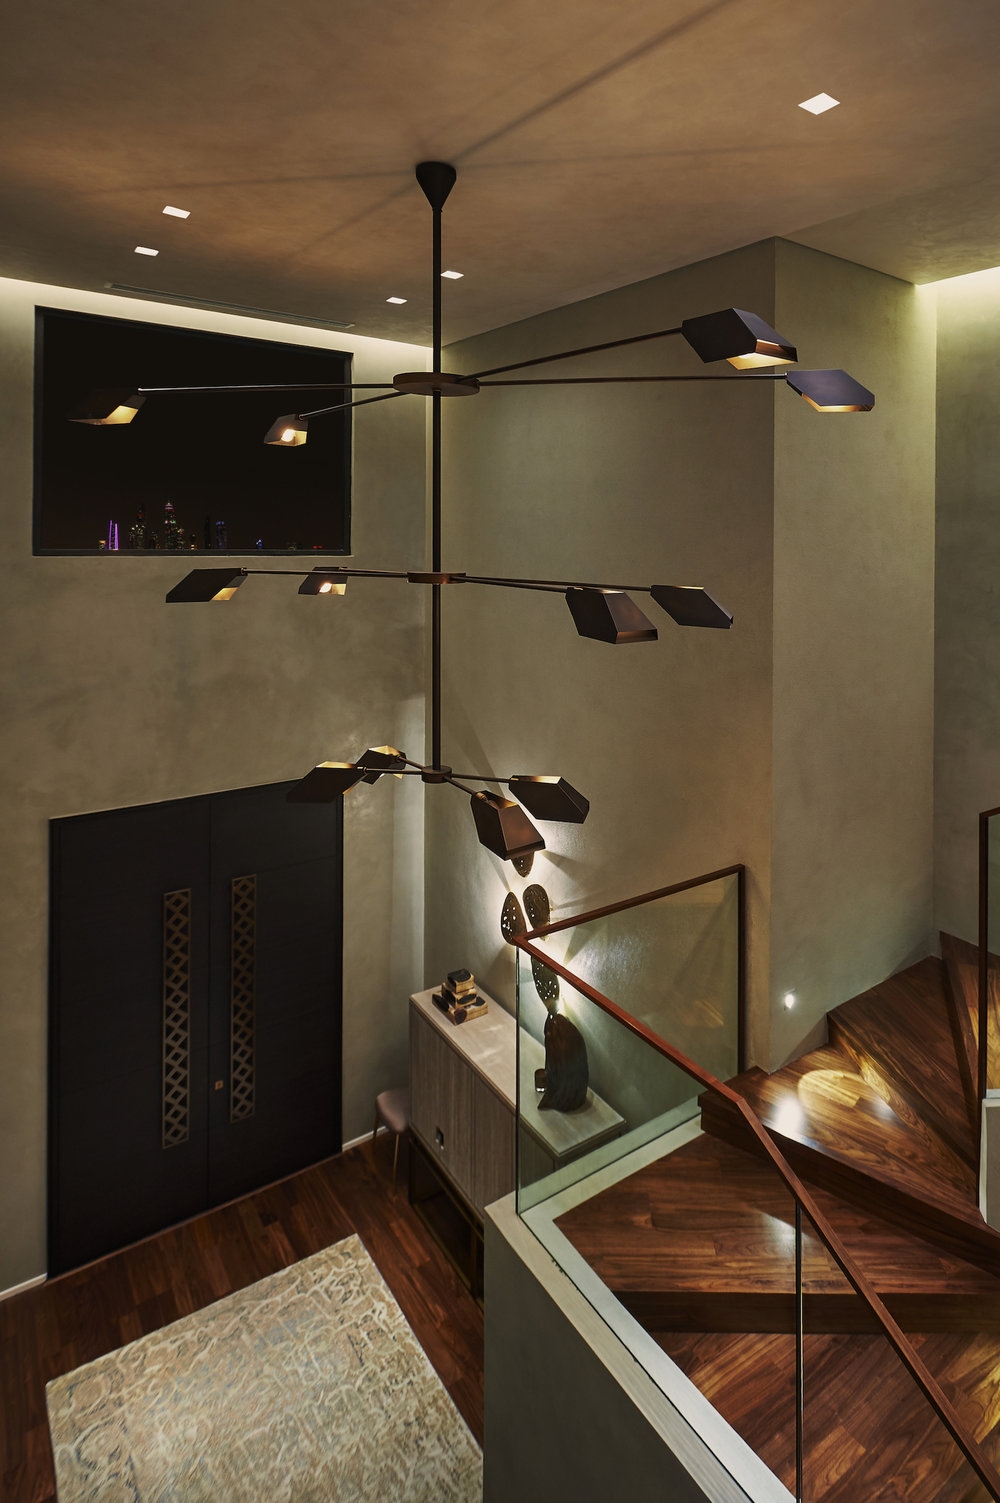 Nader-Gammas-Lighting-Design-Palm-Chandelier.jpg